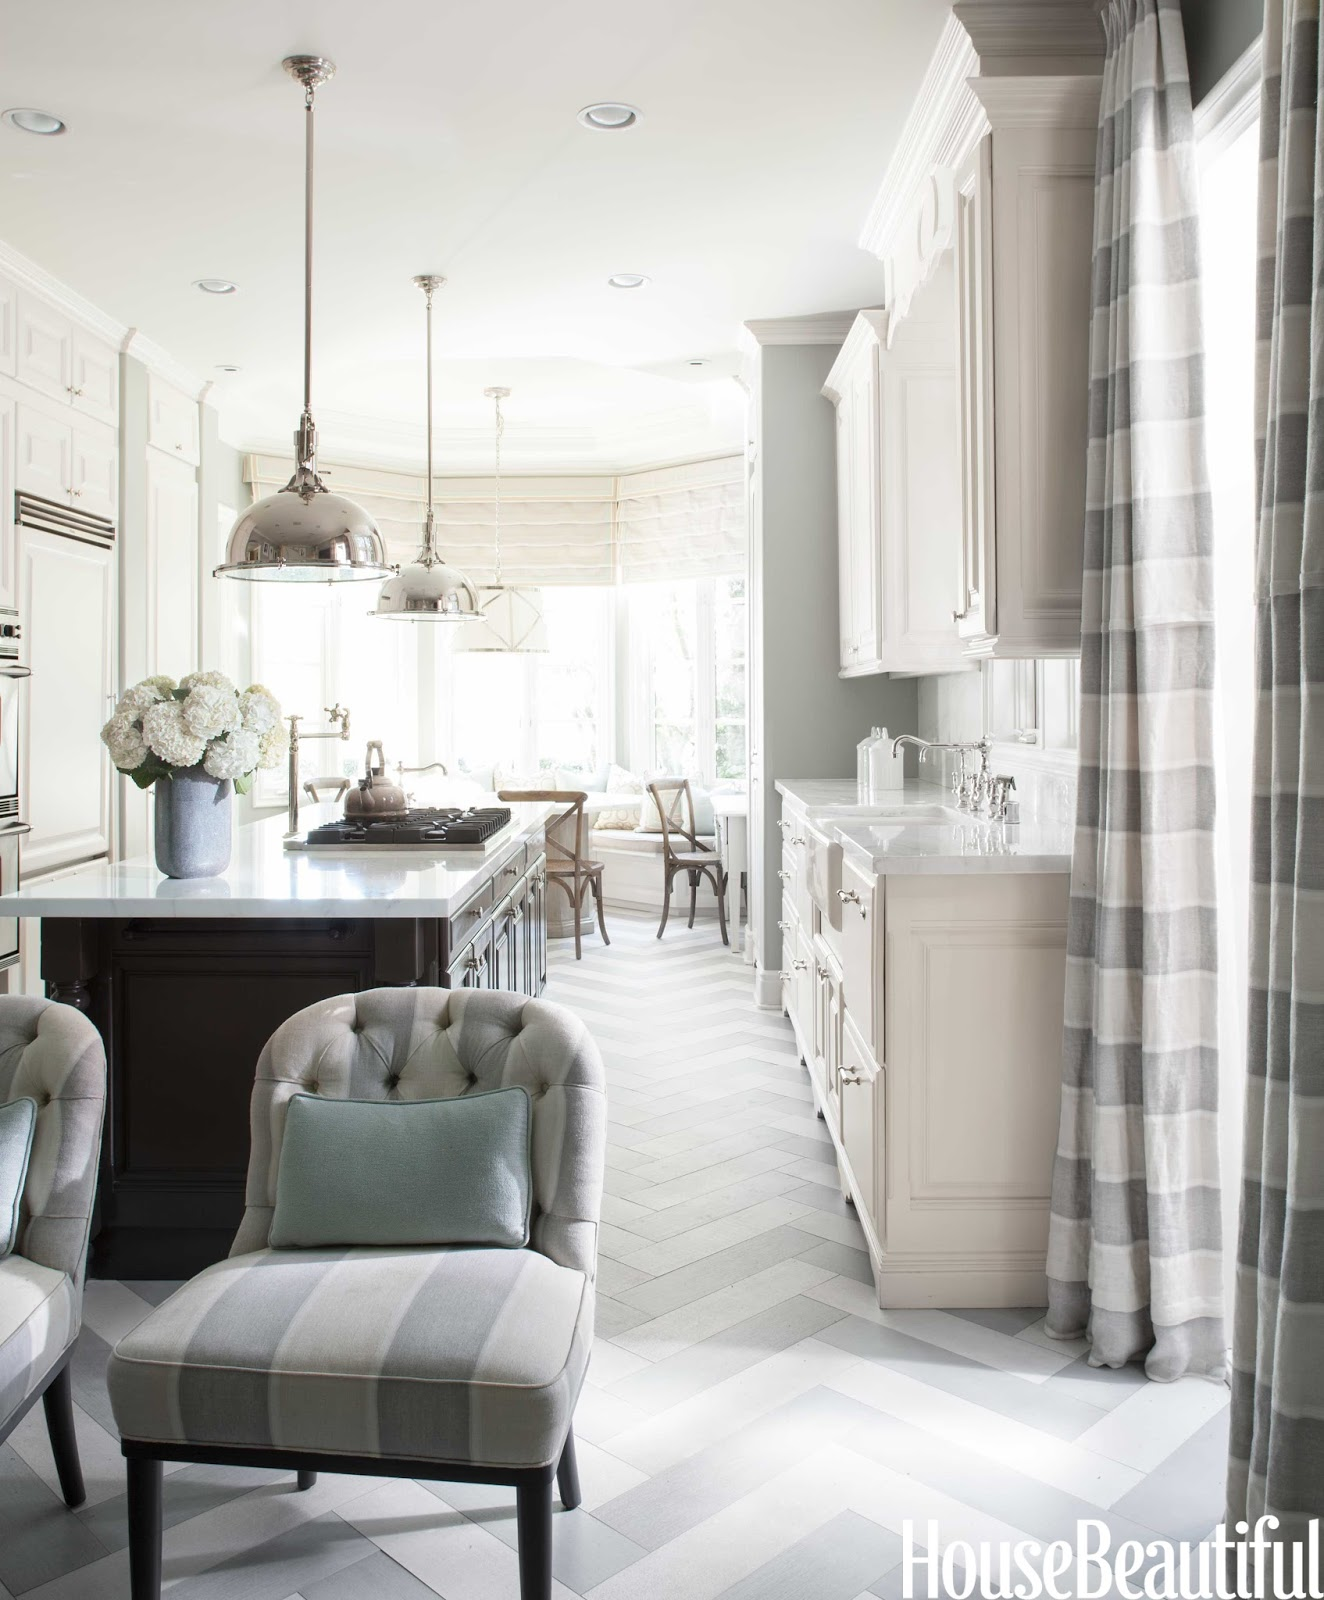 Herringbone Kitchen Floor Designer Mary Mcdonald Cleanses The Color Palette House